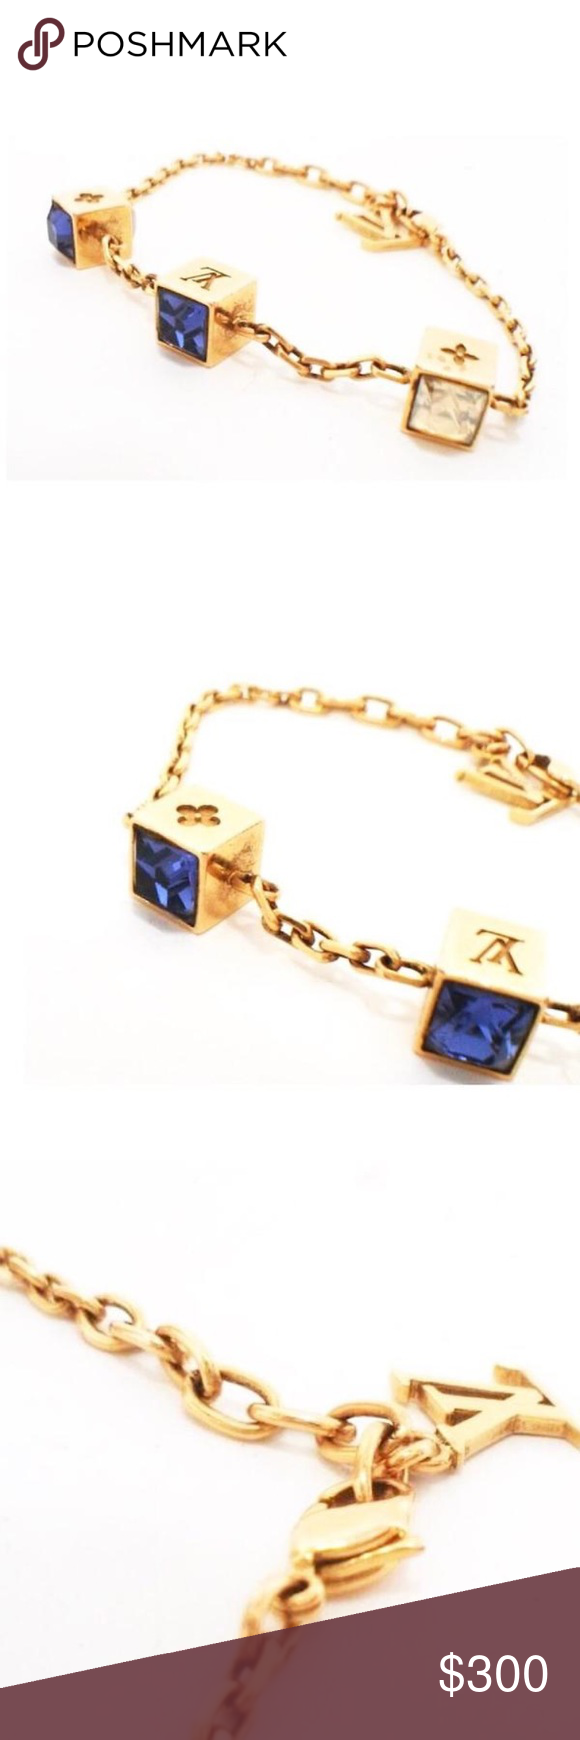 Authentic vuitton gold swarovski gamble bracelet authentic louis